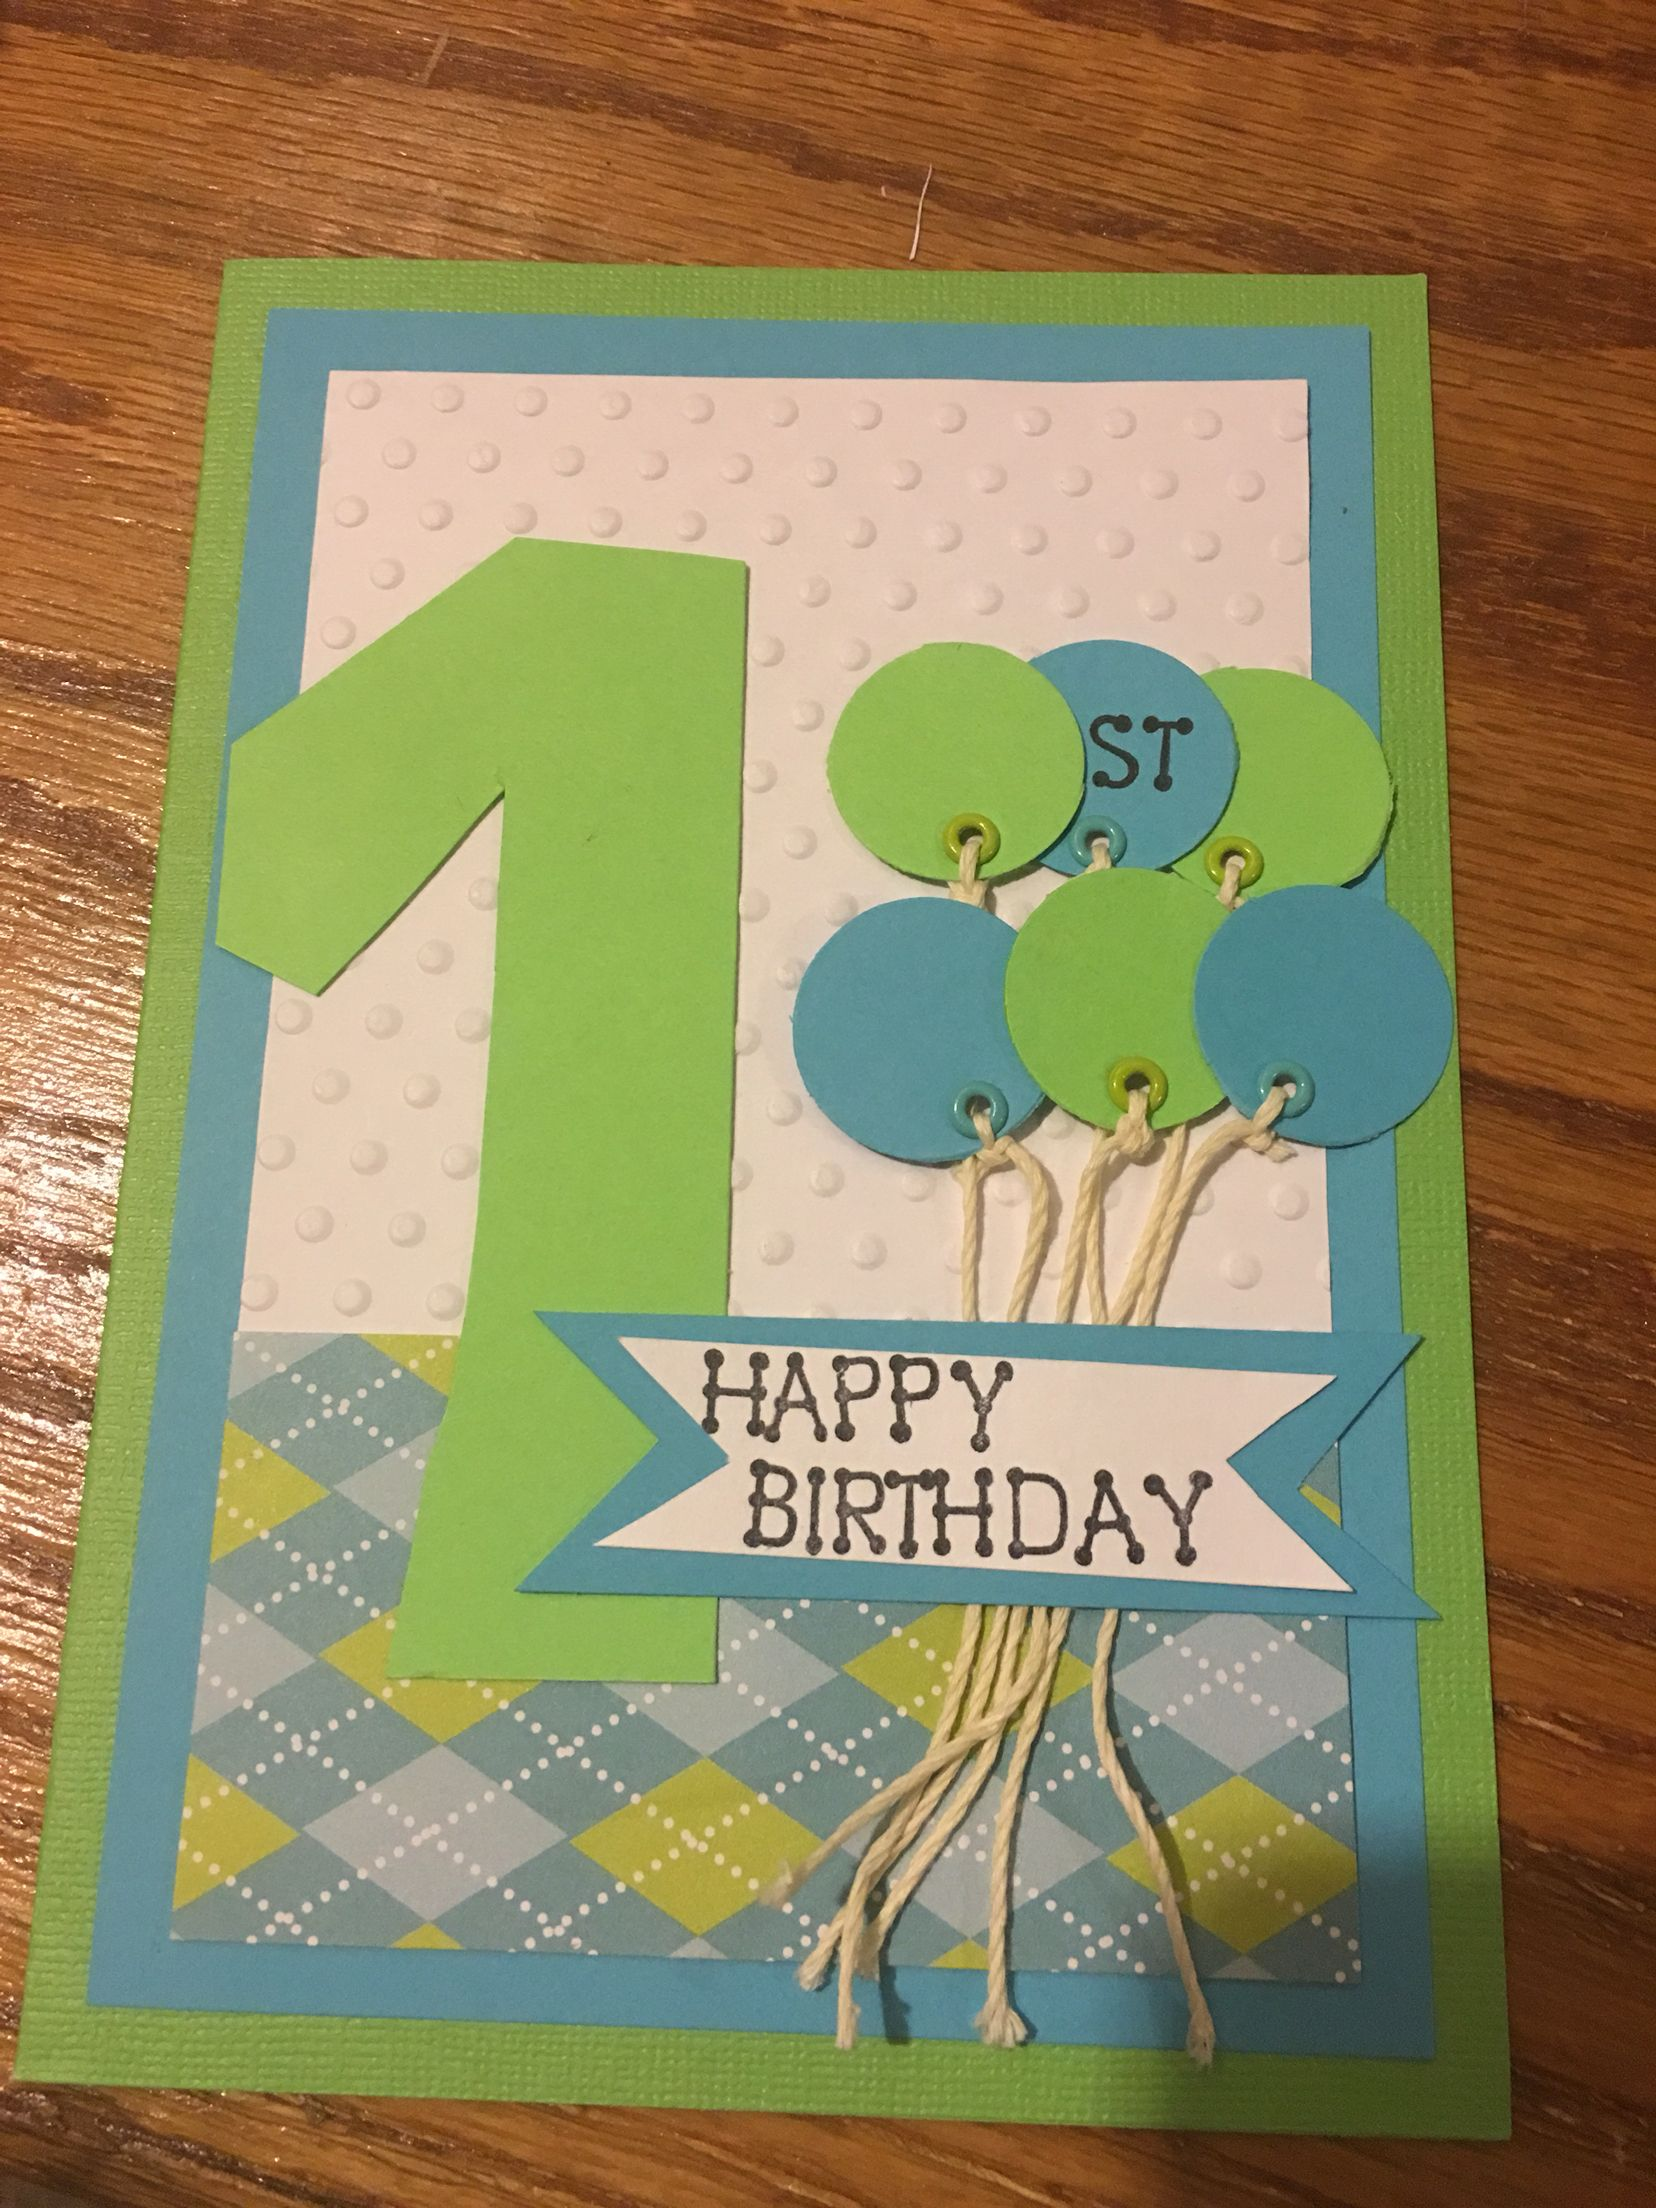 One Year Old Little Boy Birthday Card ️Cards And